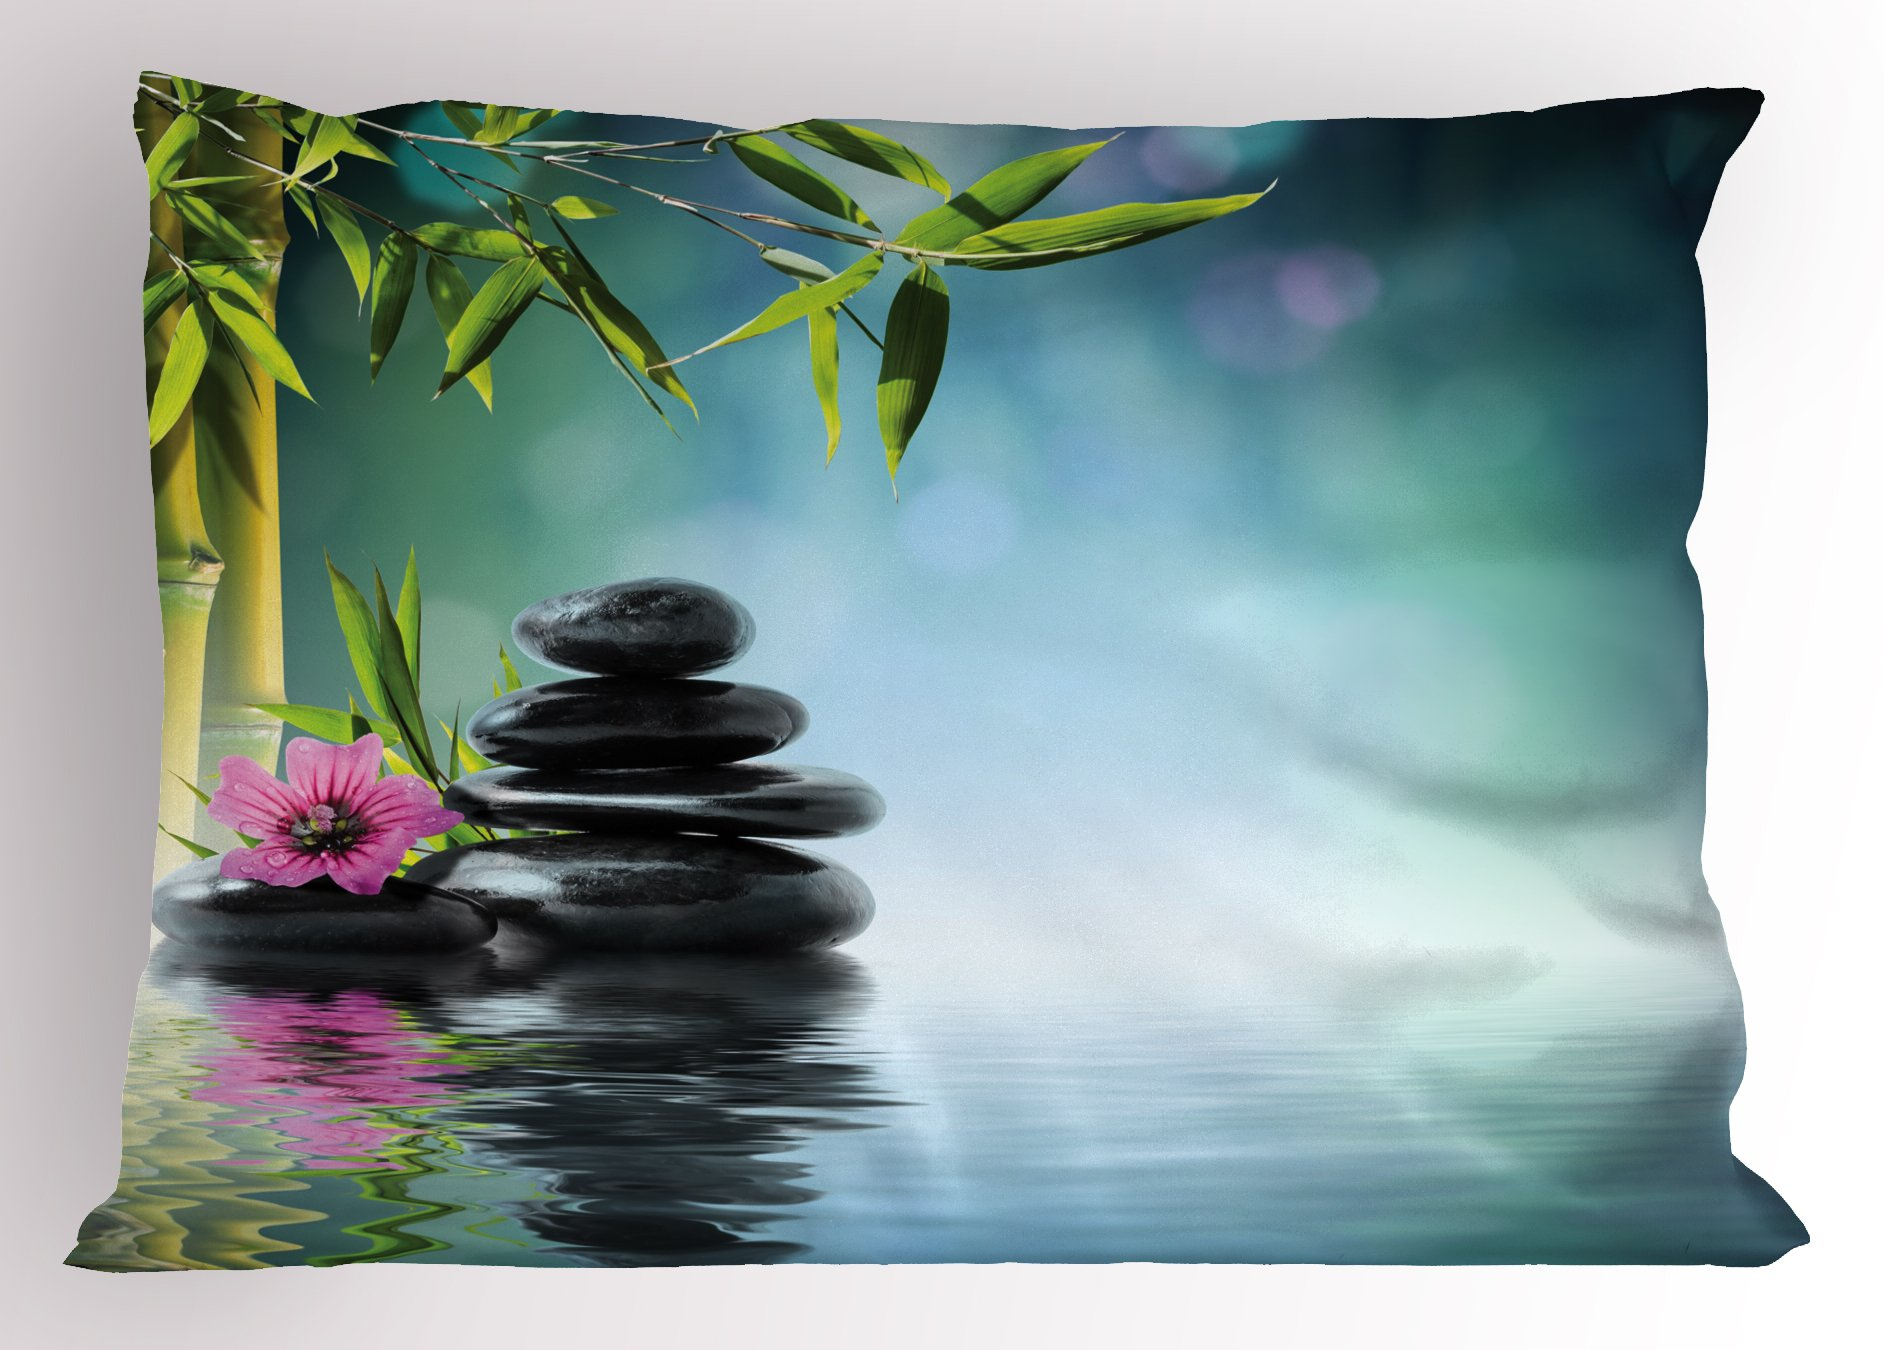 Ambesonne Zen Garden Pillow Sham, Pink Flower Spa Stones and Bamboo Tree on The Water Relaxation Theraphy Peace, Decorative Standard Queen Size Printed Pillowcase, 30 X 20 inches, Multicolor